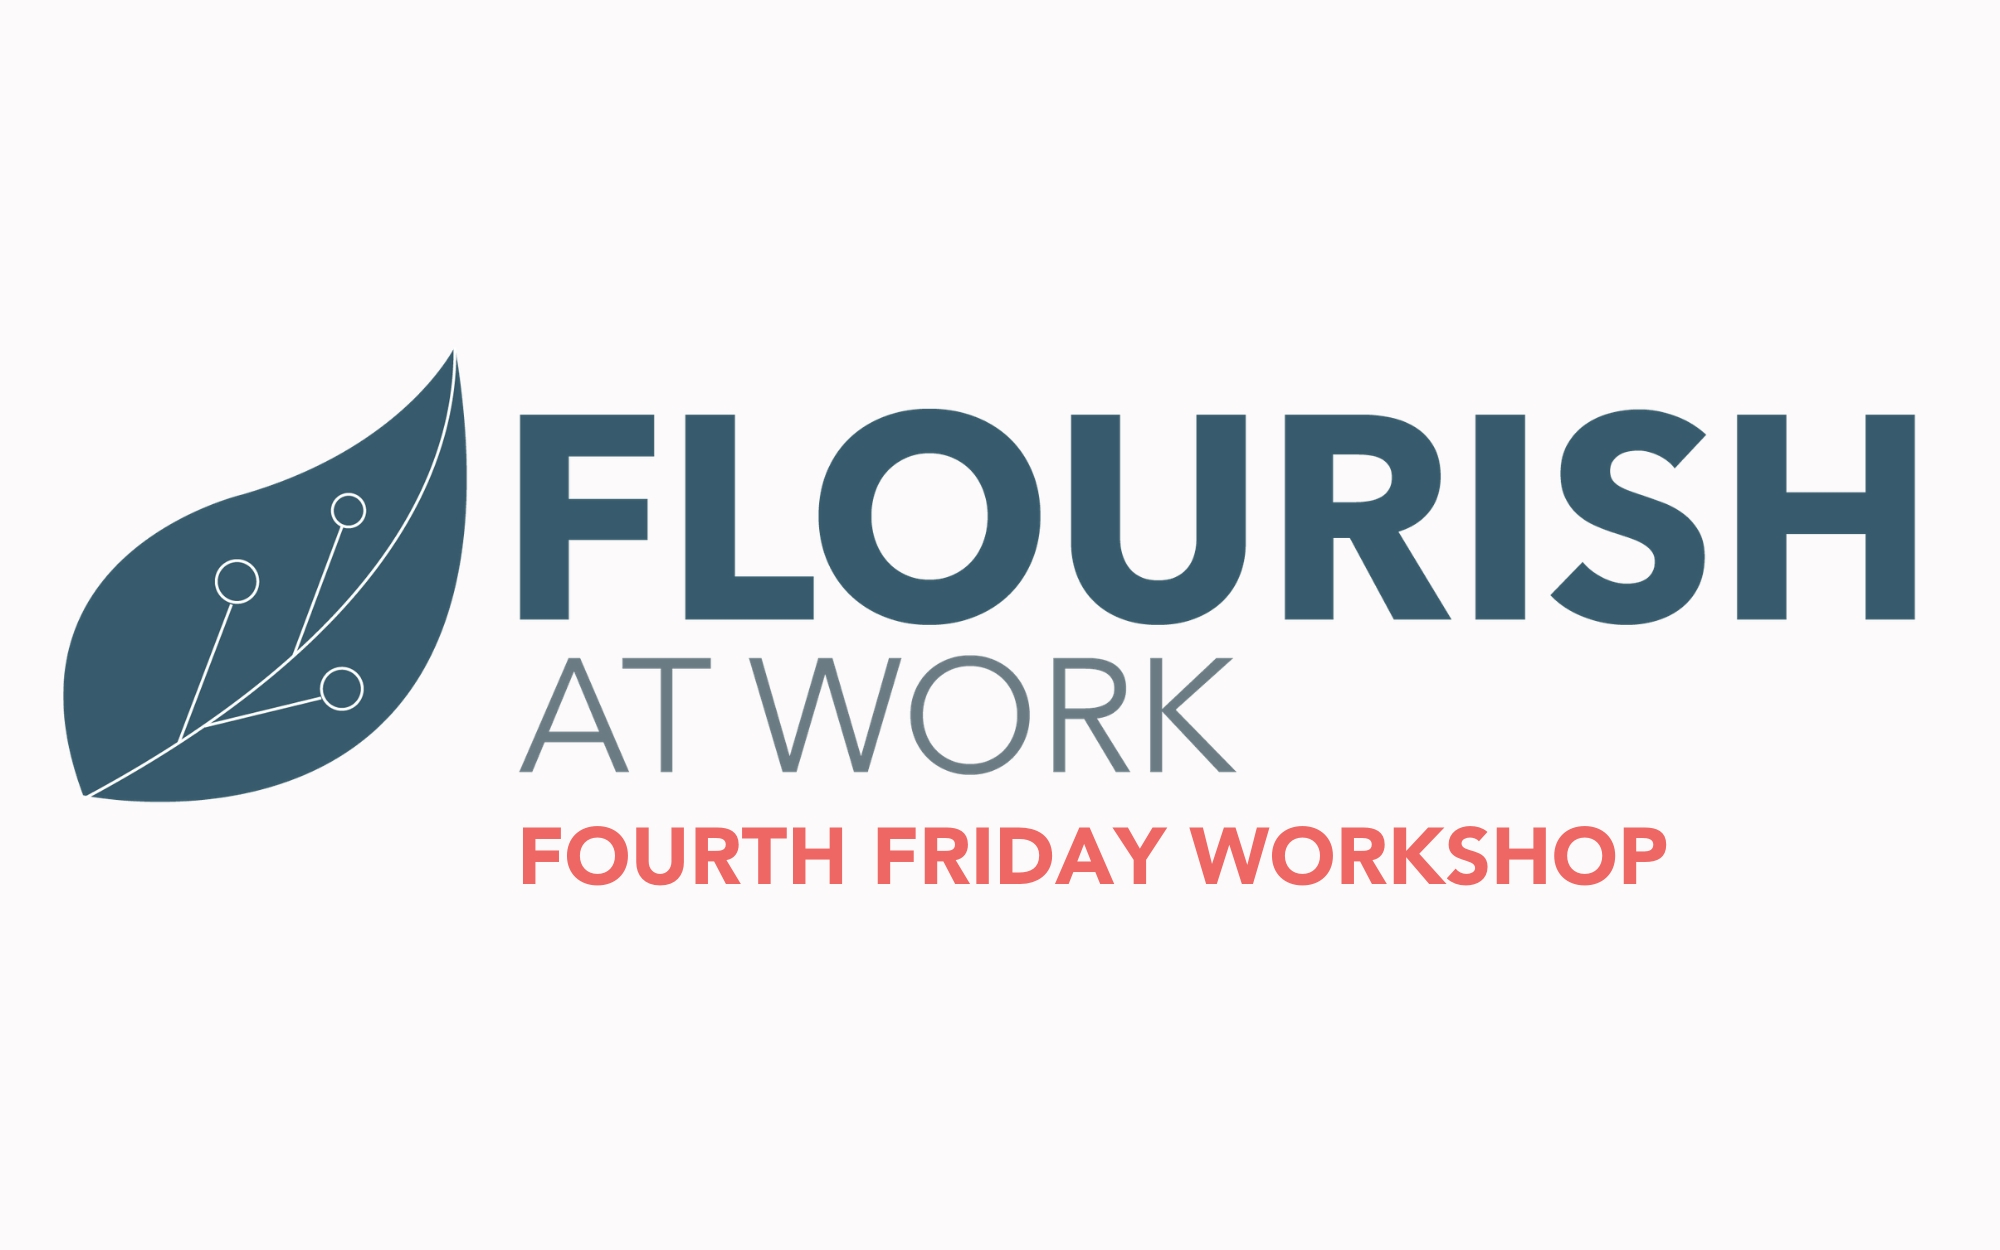 Image for Followership: A Fourth Friday Workshop with Flourish at Work